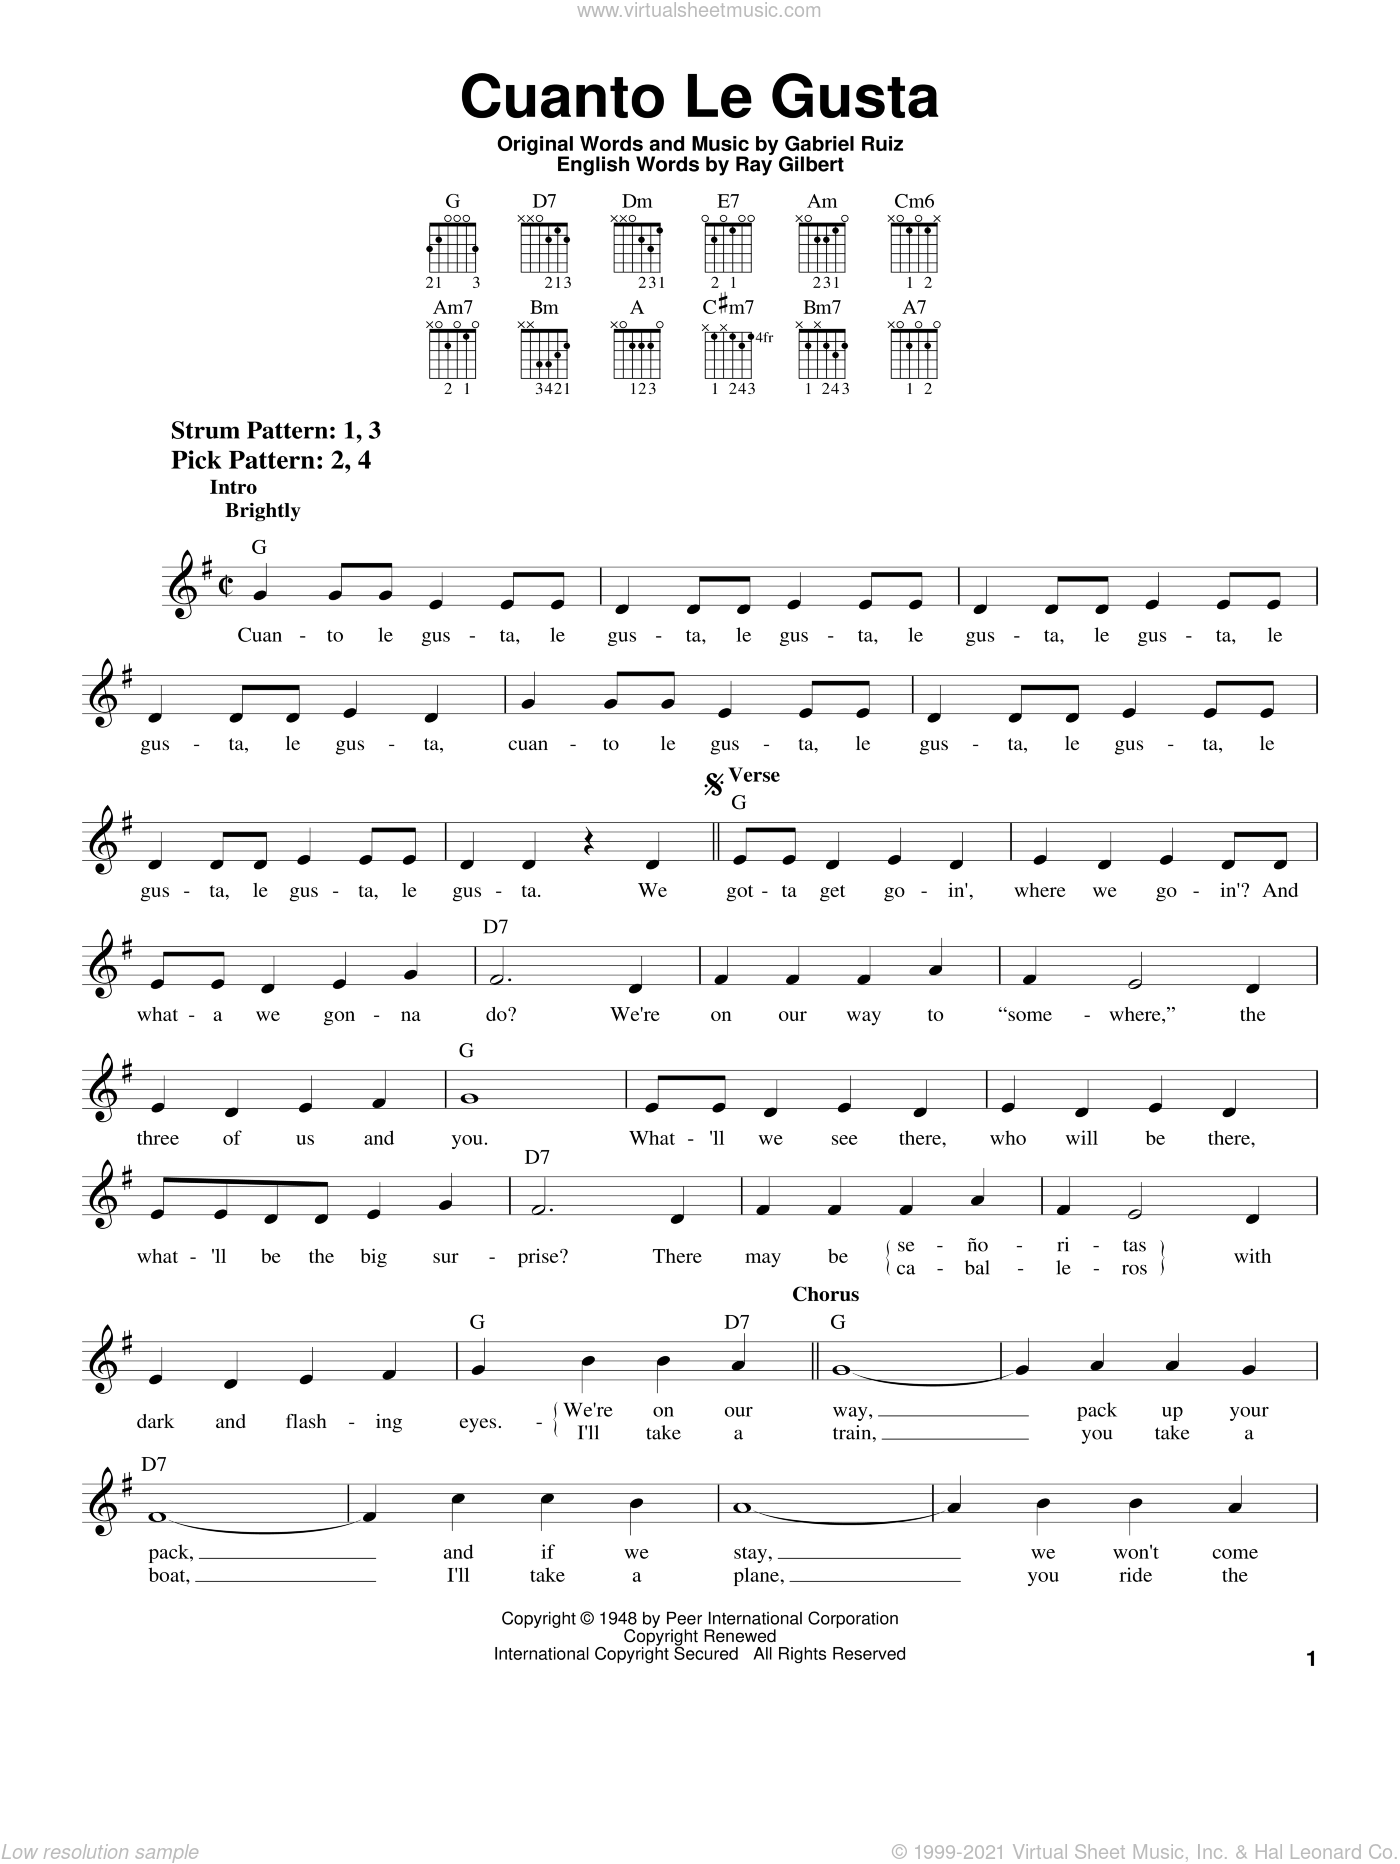 Cuanto Le Gusta sheet music for guitar solo (chords) by The Andrews Sisters, Carmen Miranda, Gabriel Ruiz and Ray Gilbert, easy guitar (chords). Score Image Preview.